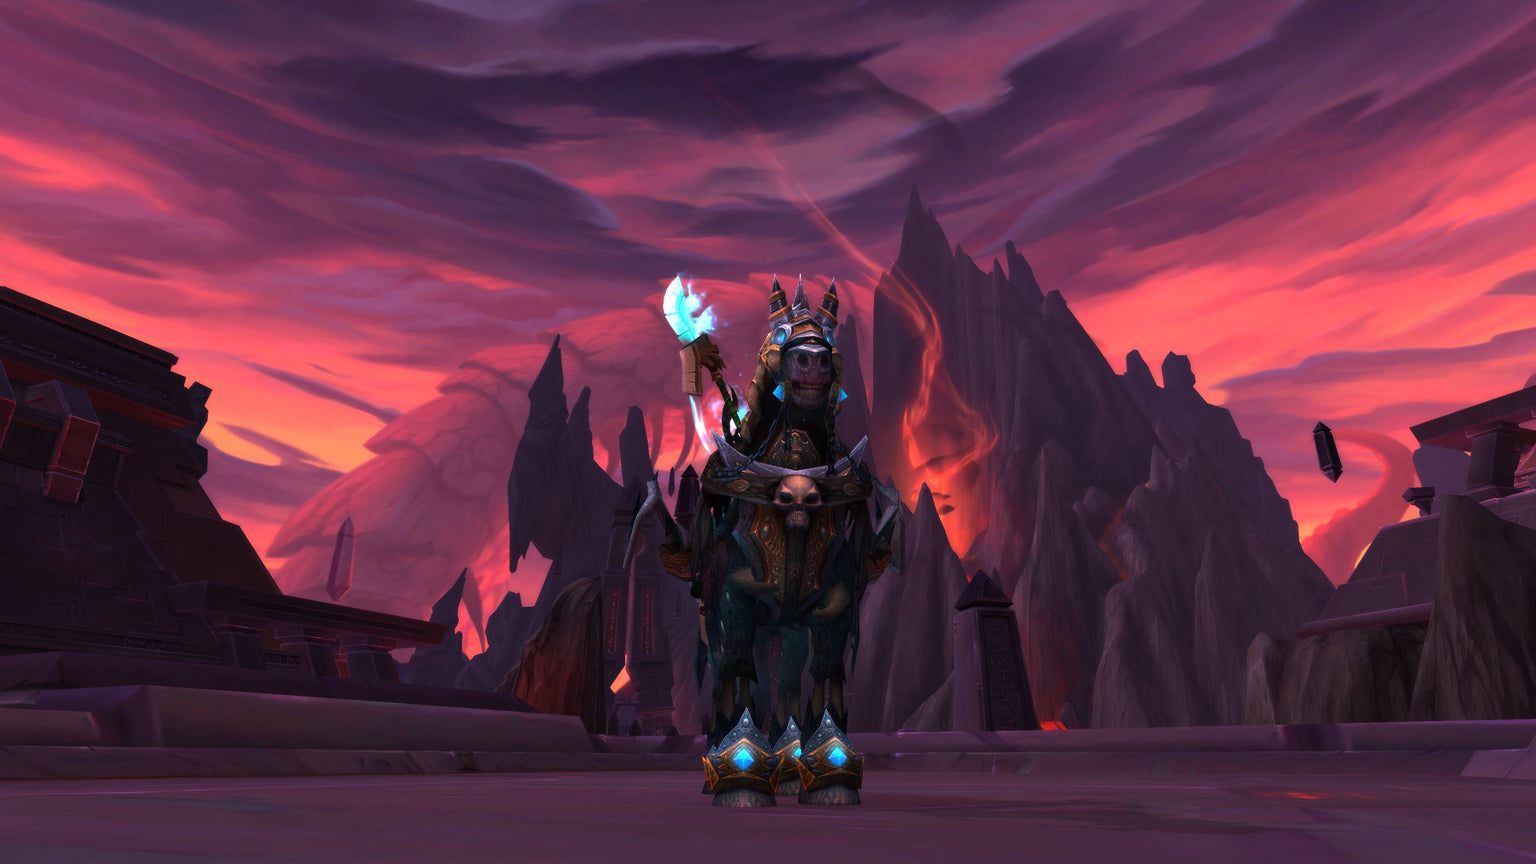 479 Pala | 2x Glad | Spectral Tiger | Rare Mounts | Arena Master | INSANE ACCOUNT!